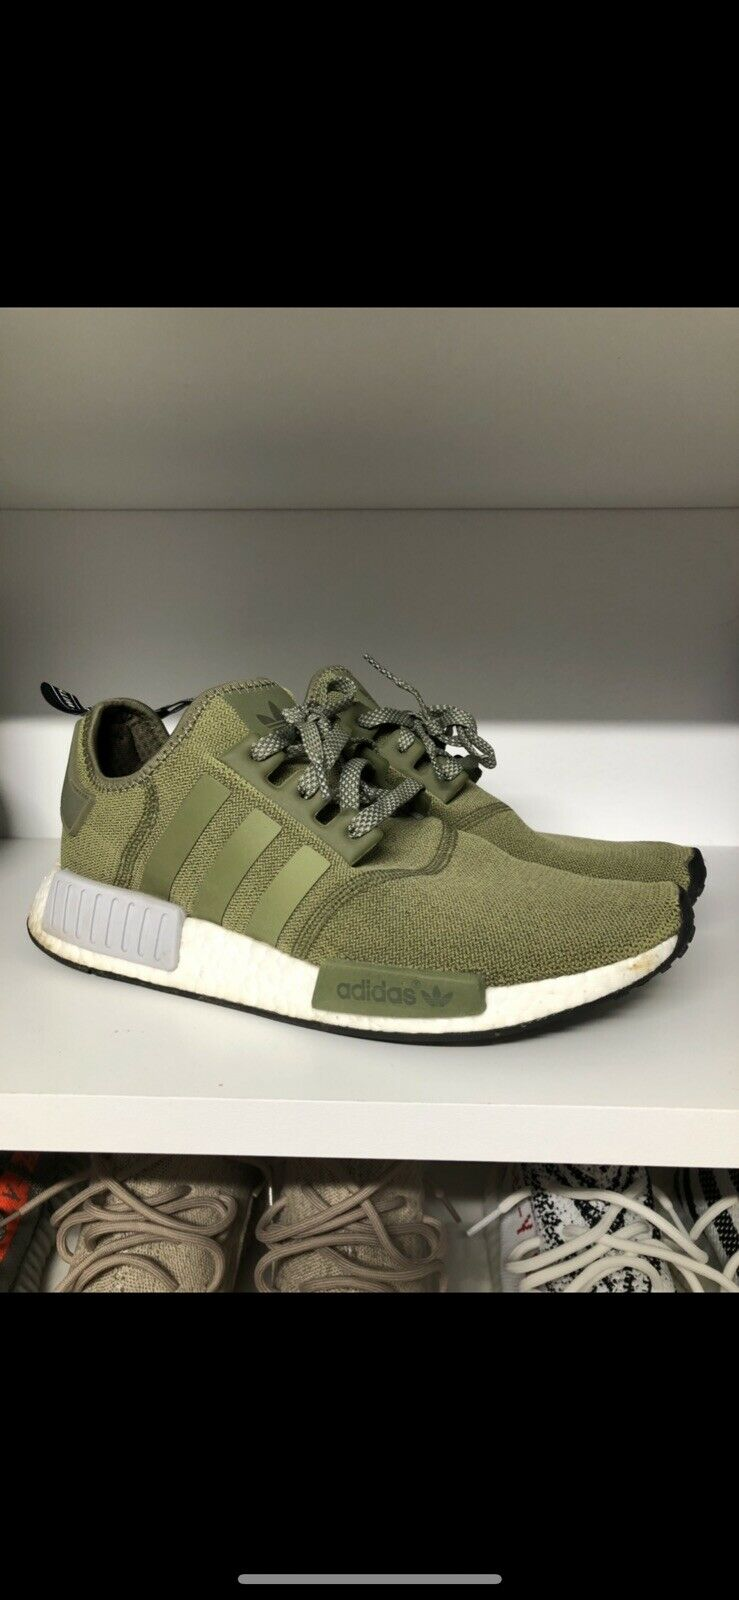 best sneakers 9eaa2 a8c70 Adidas NMD R1 Olive Green Green Green Size Us 10 Men e3a2be ...